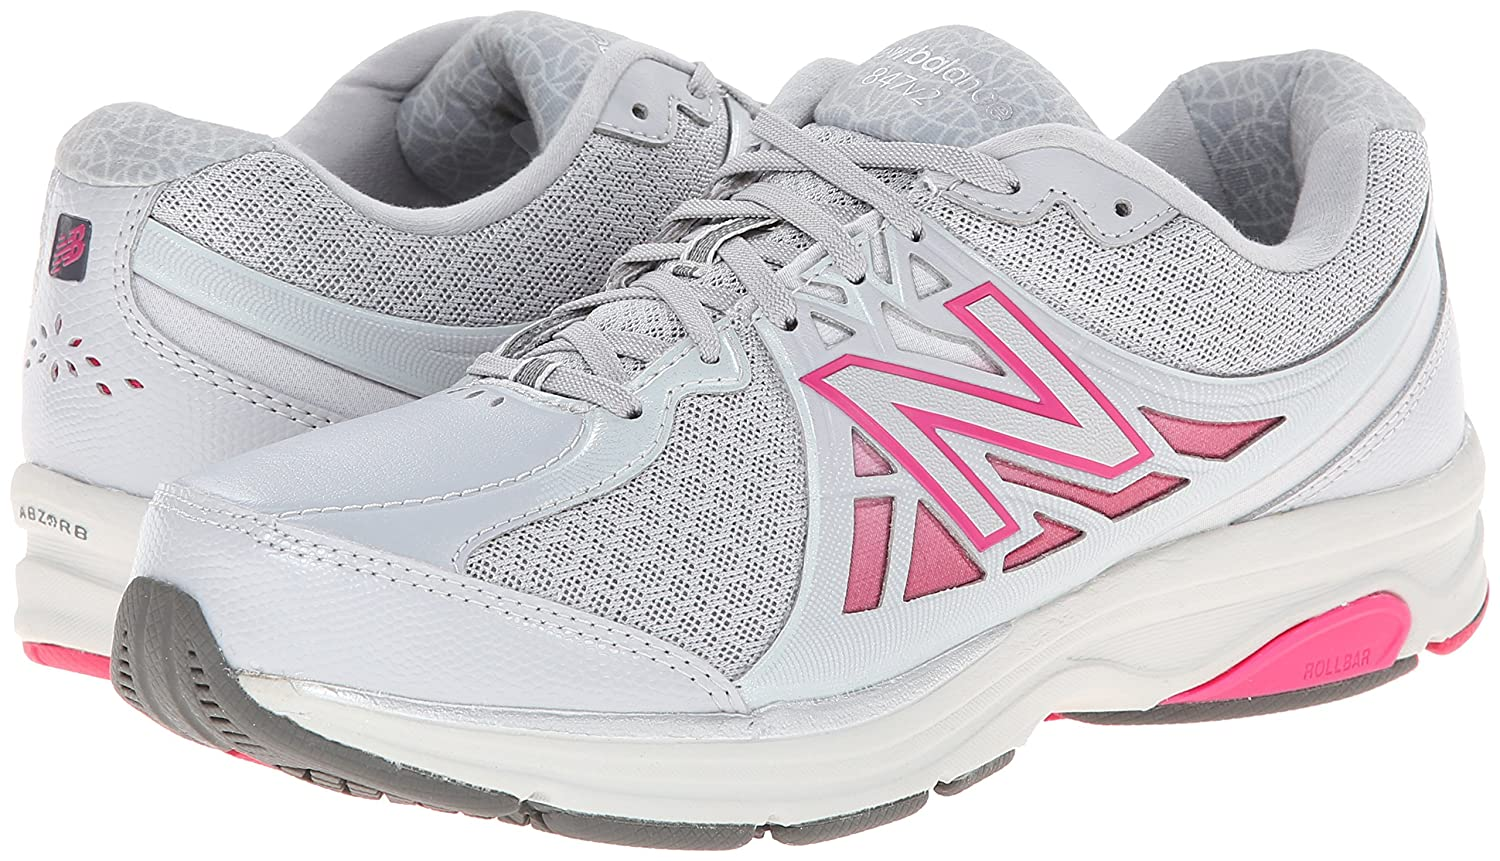 New Balance Women's 7.5 WW847V2 Walking Shoe B00IY8U3BG 7.5 Women's 2A US|Grey c90010